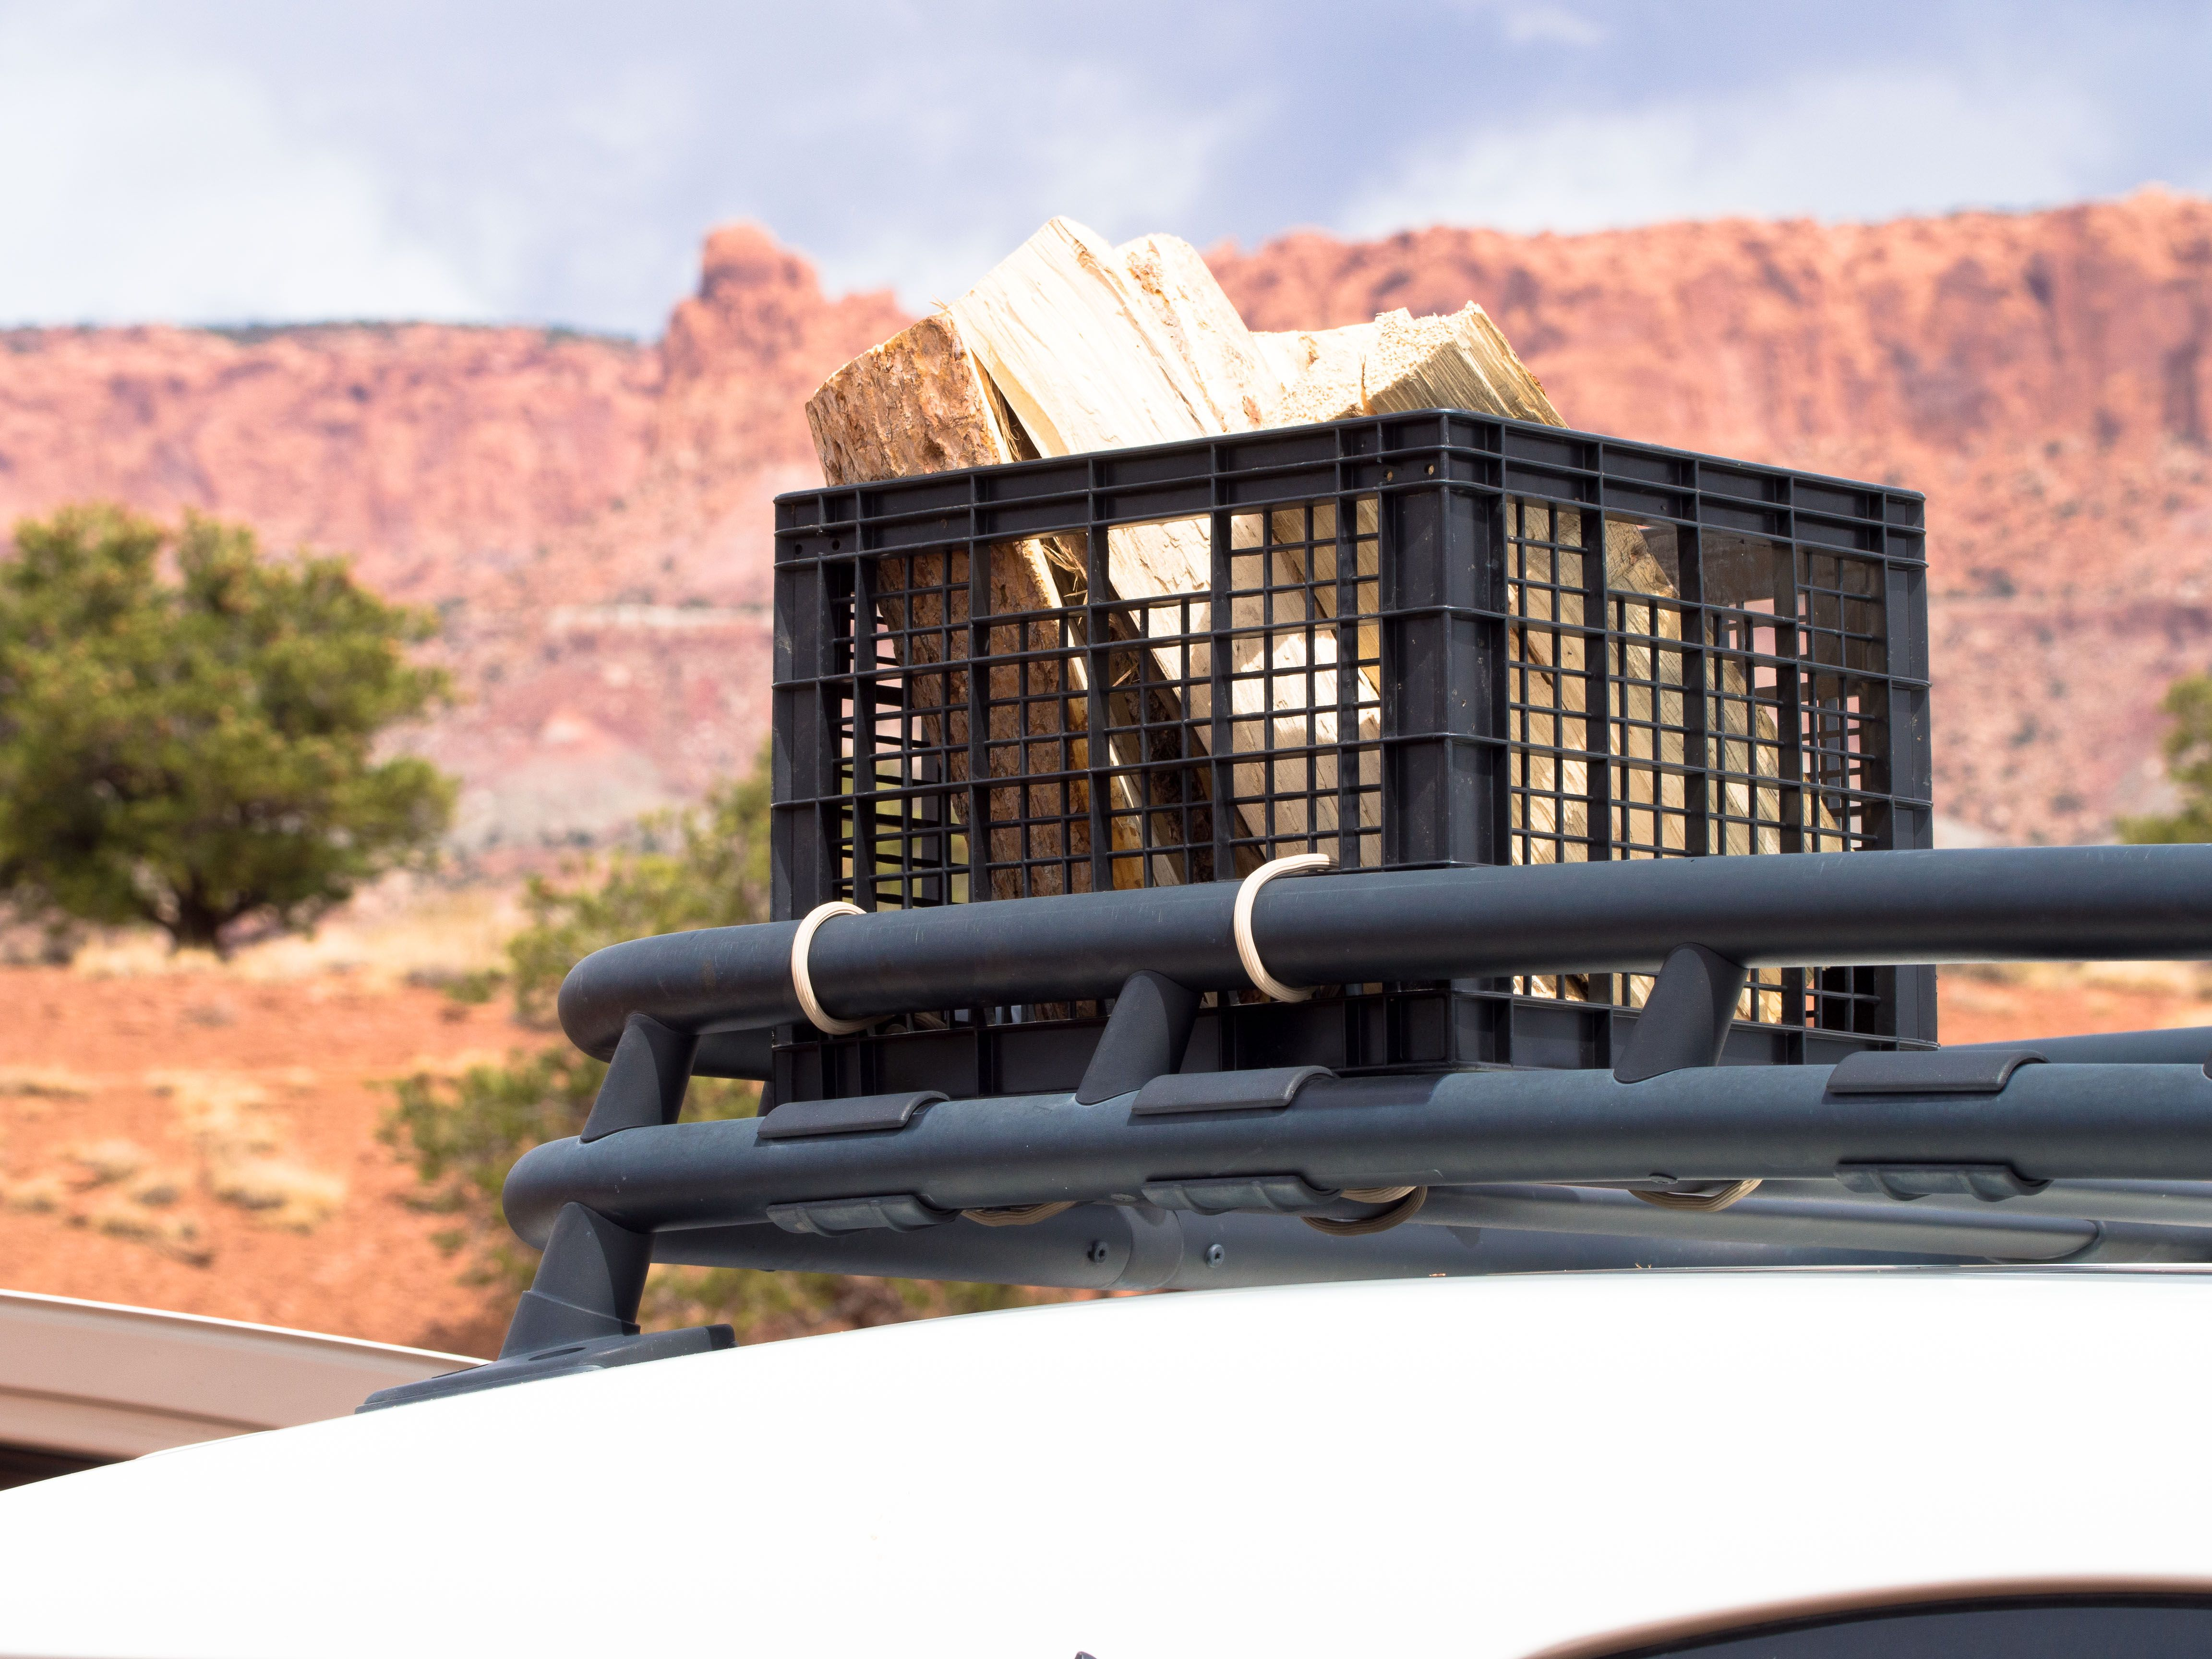 Want To Add Some Storage Space To The Roof Rack On Your Car Try Using A Few Gear Ties To Attach A Milk Carton It Works Gre Gear Ties Storage Spaces